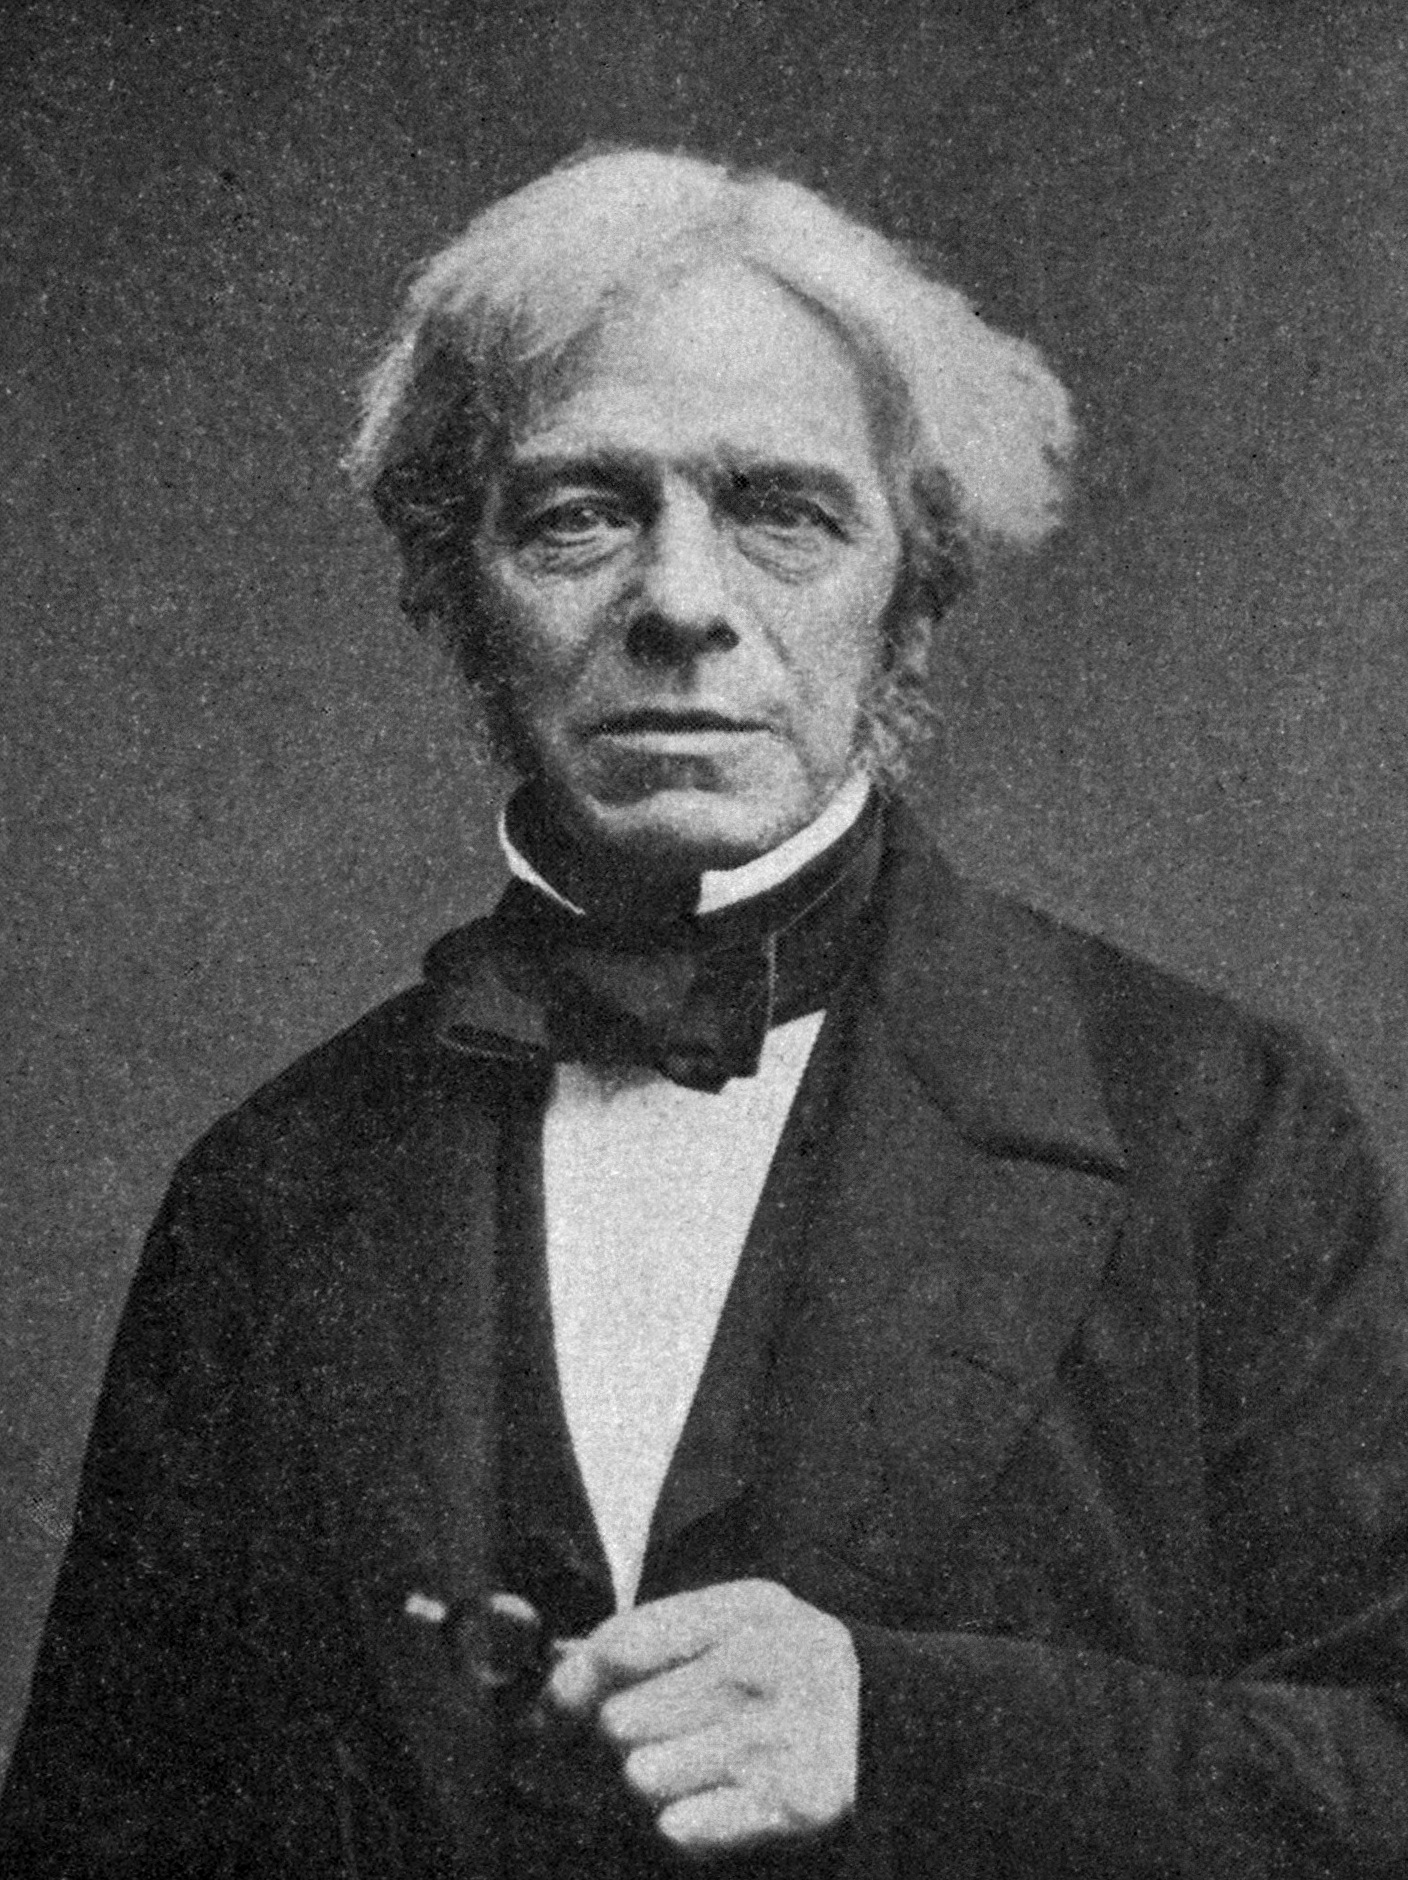 https://i1.wp.com/upload.wikimedia.org/wikipedia/commons/5/5b/Faraday-Millikan-Gale-1913.jpg